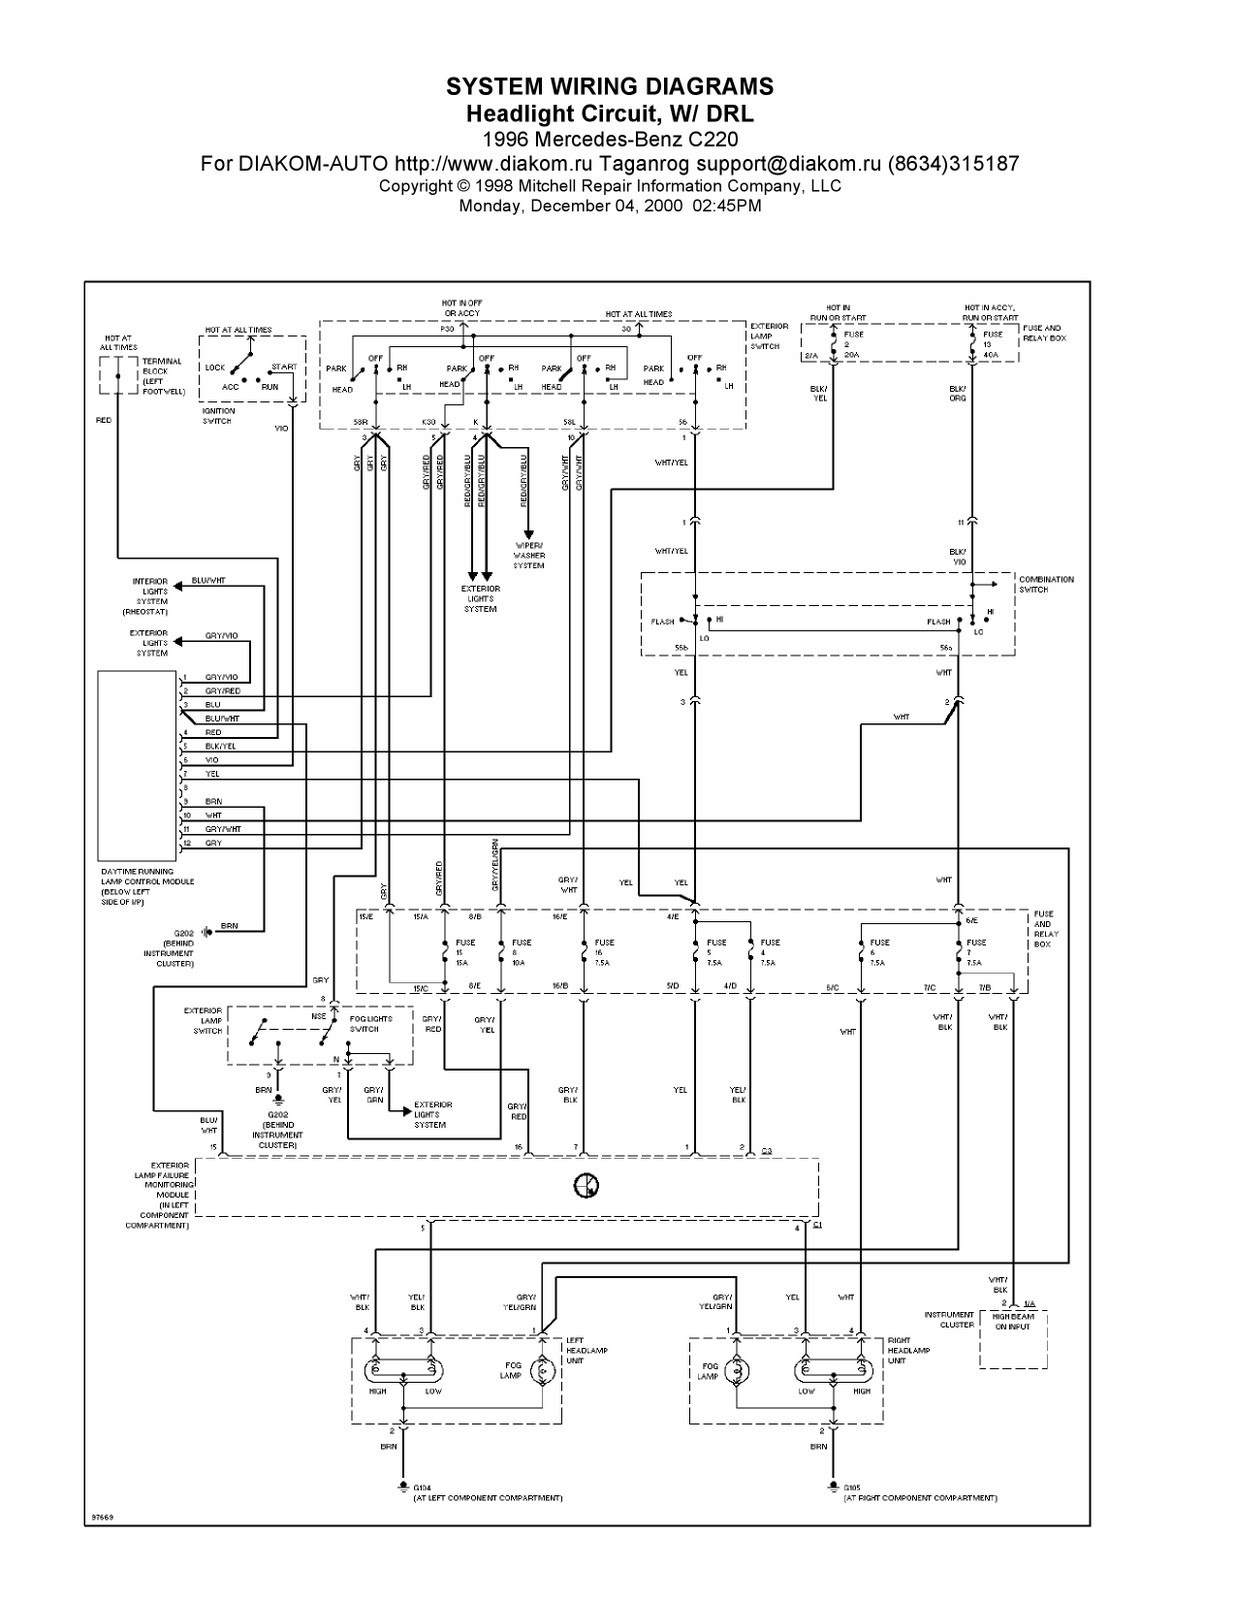 medium resolution of mercedes benz electrical wiring diagrams wiring database librarymercedes electrical diagrams wiring diagrams schema mercedes benz 1990